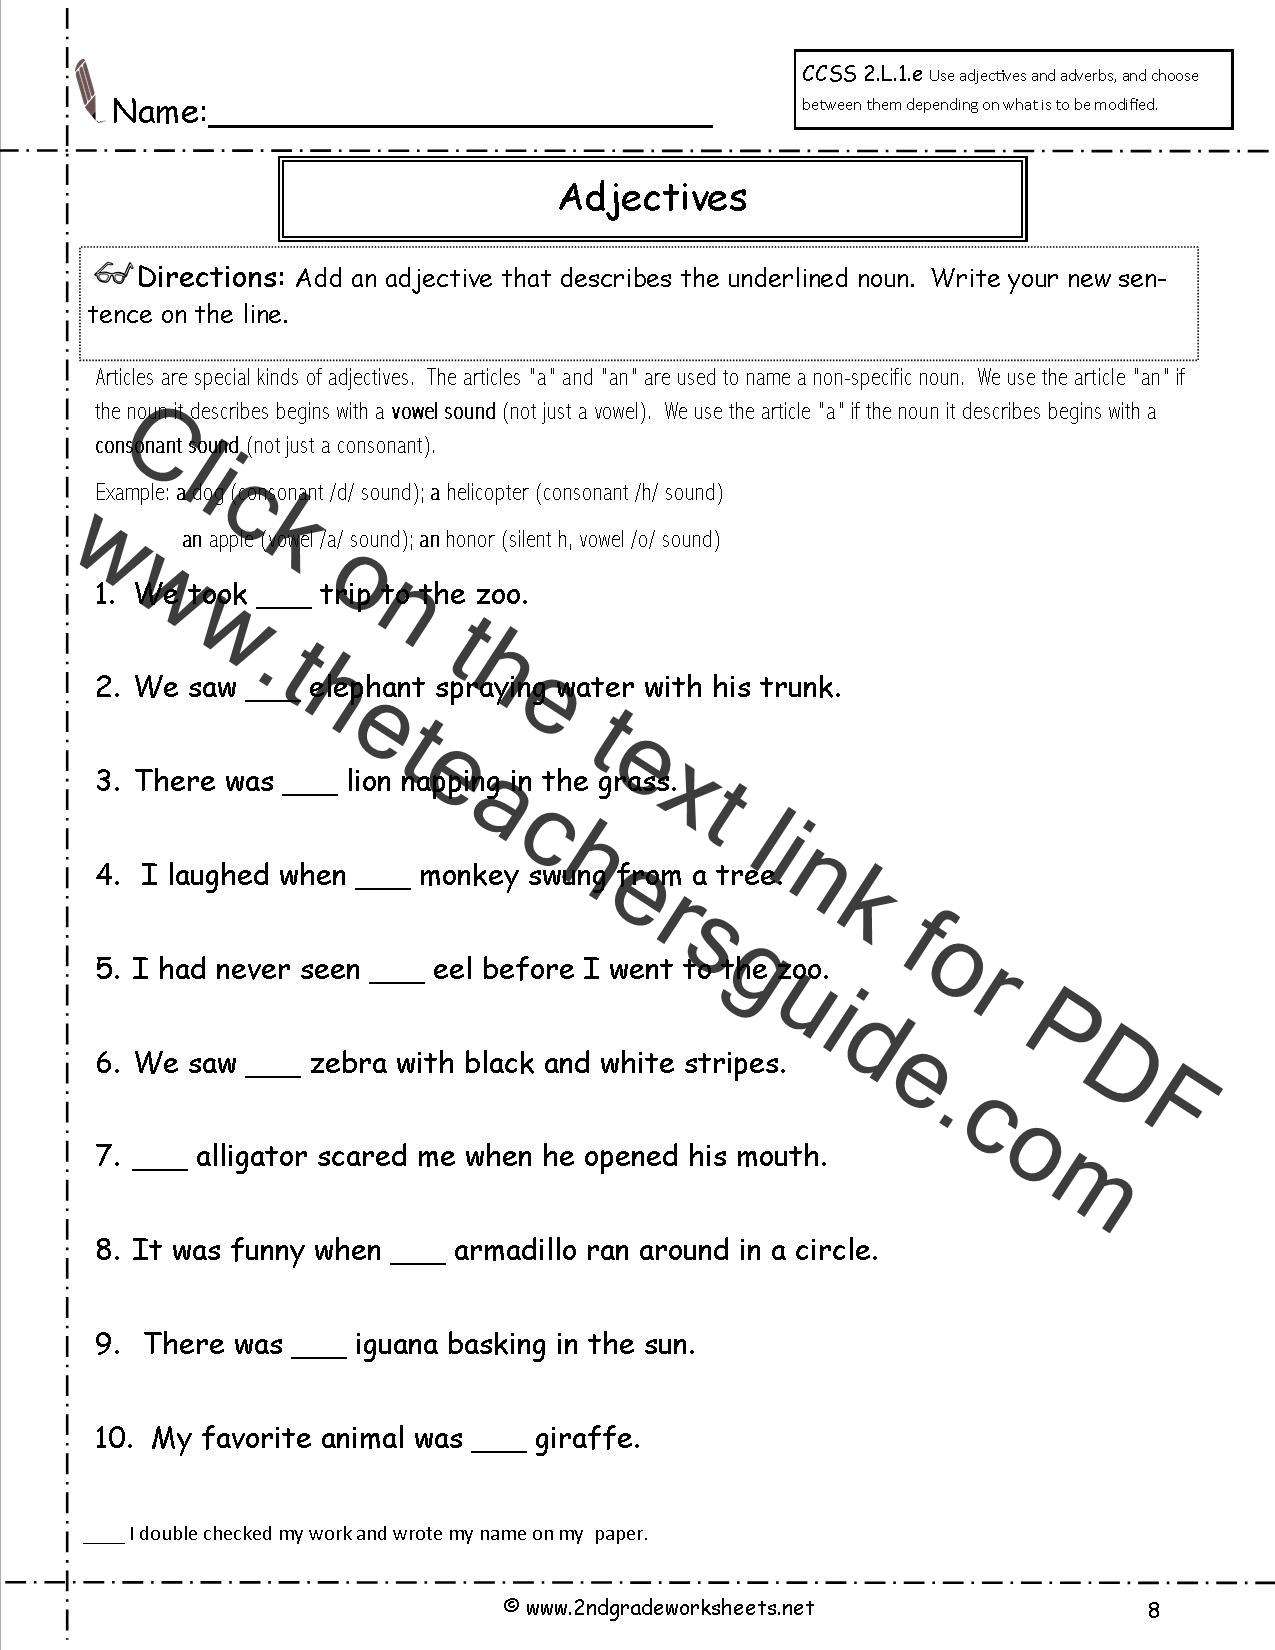 worksheet Comma Usage Worksheet free languagegrammar worksheets and printouts adjectives worksheets